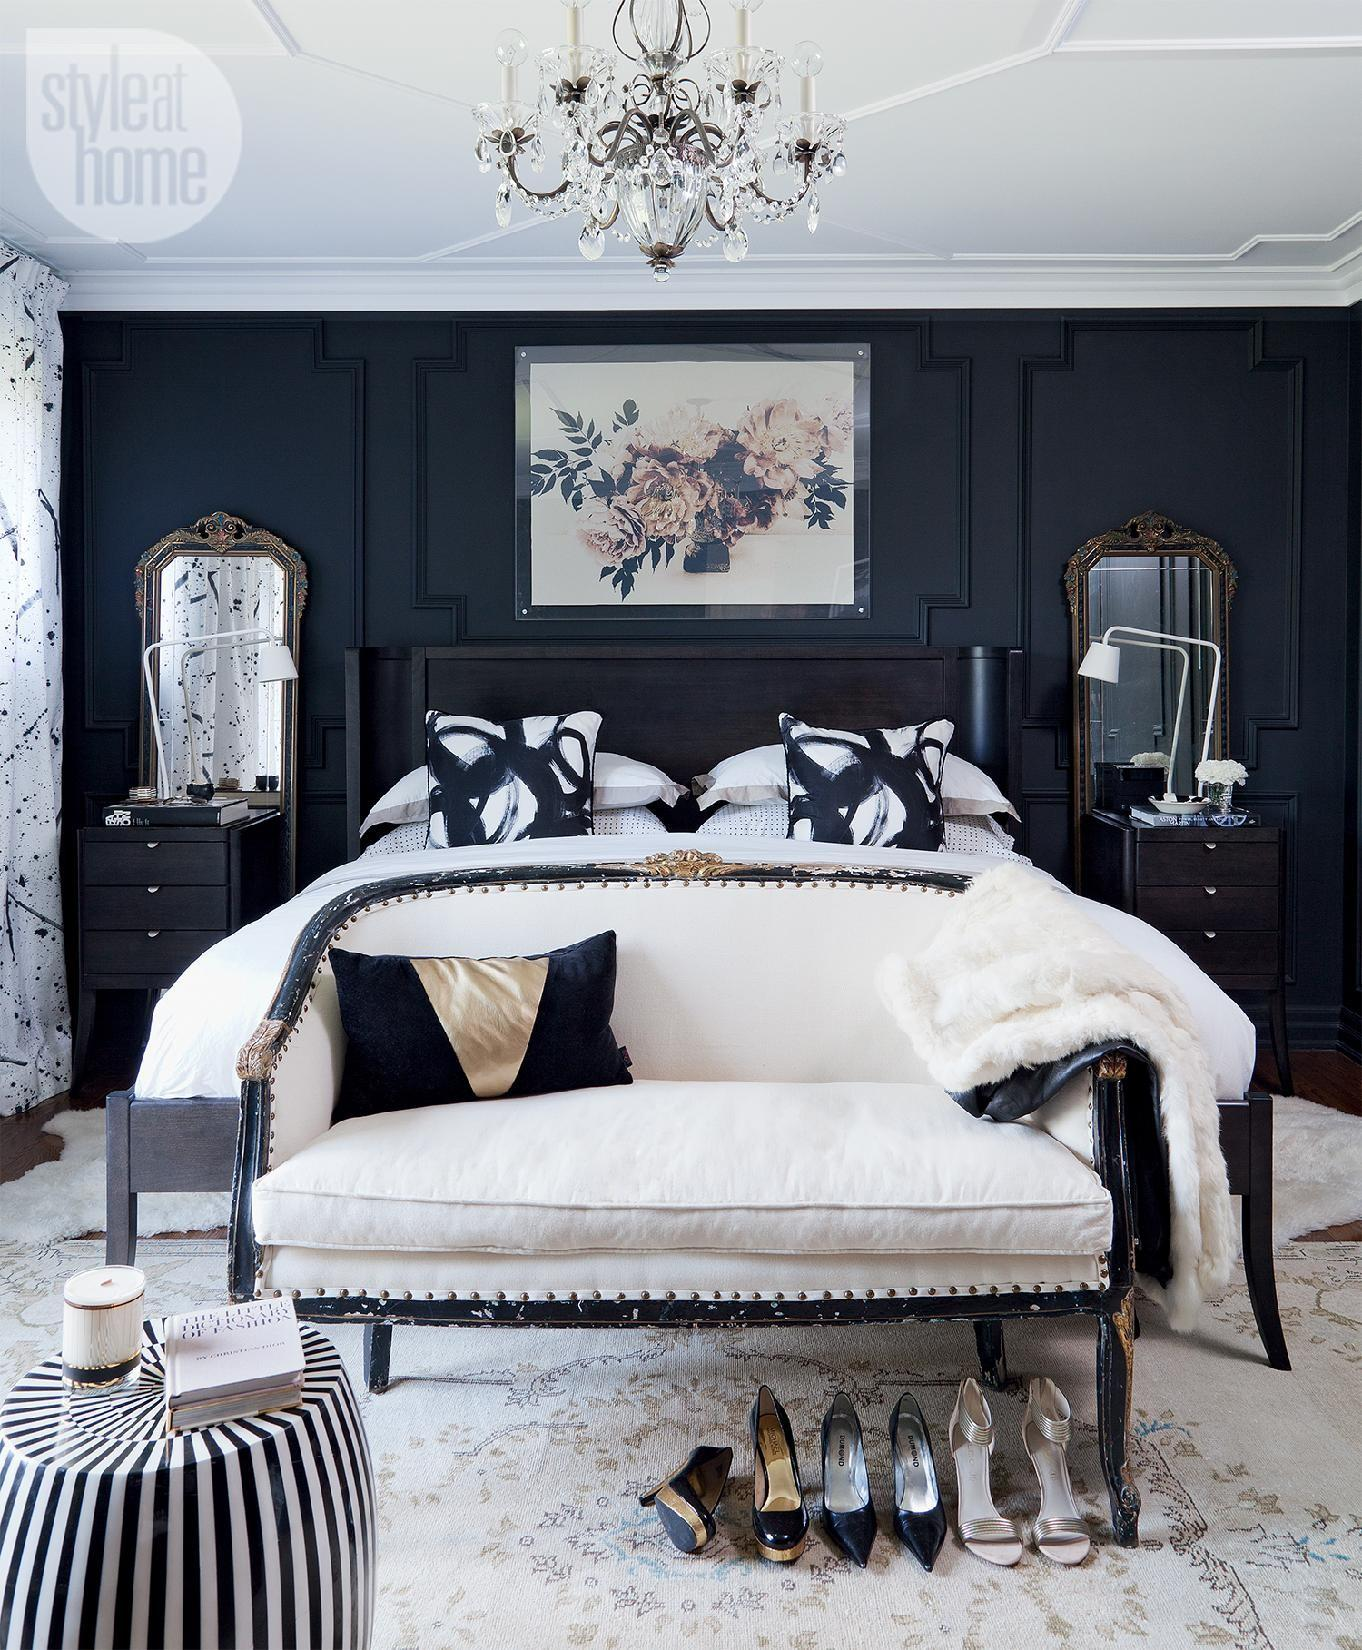 Bedroom Decor Moody Dramatic Master Suite Style Home